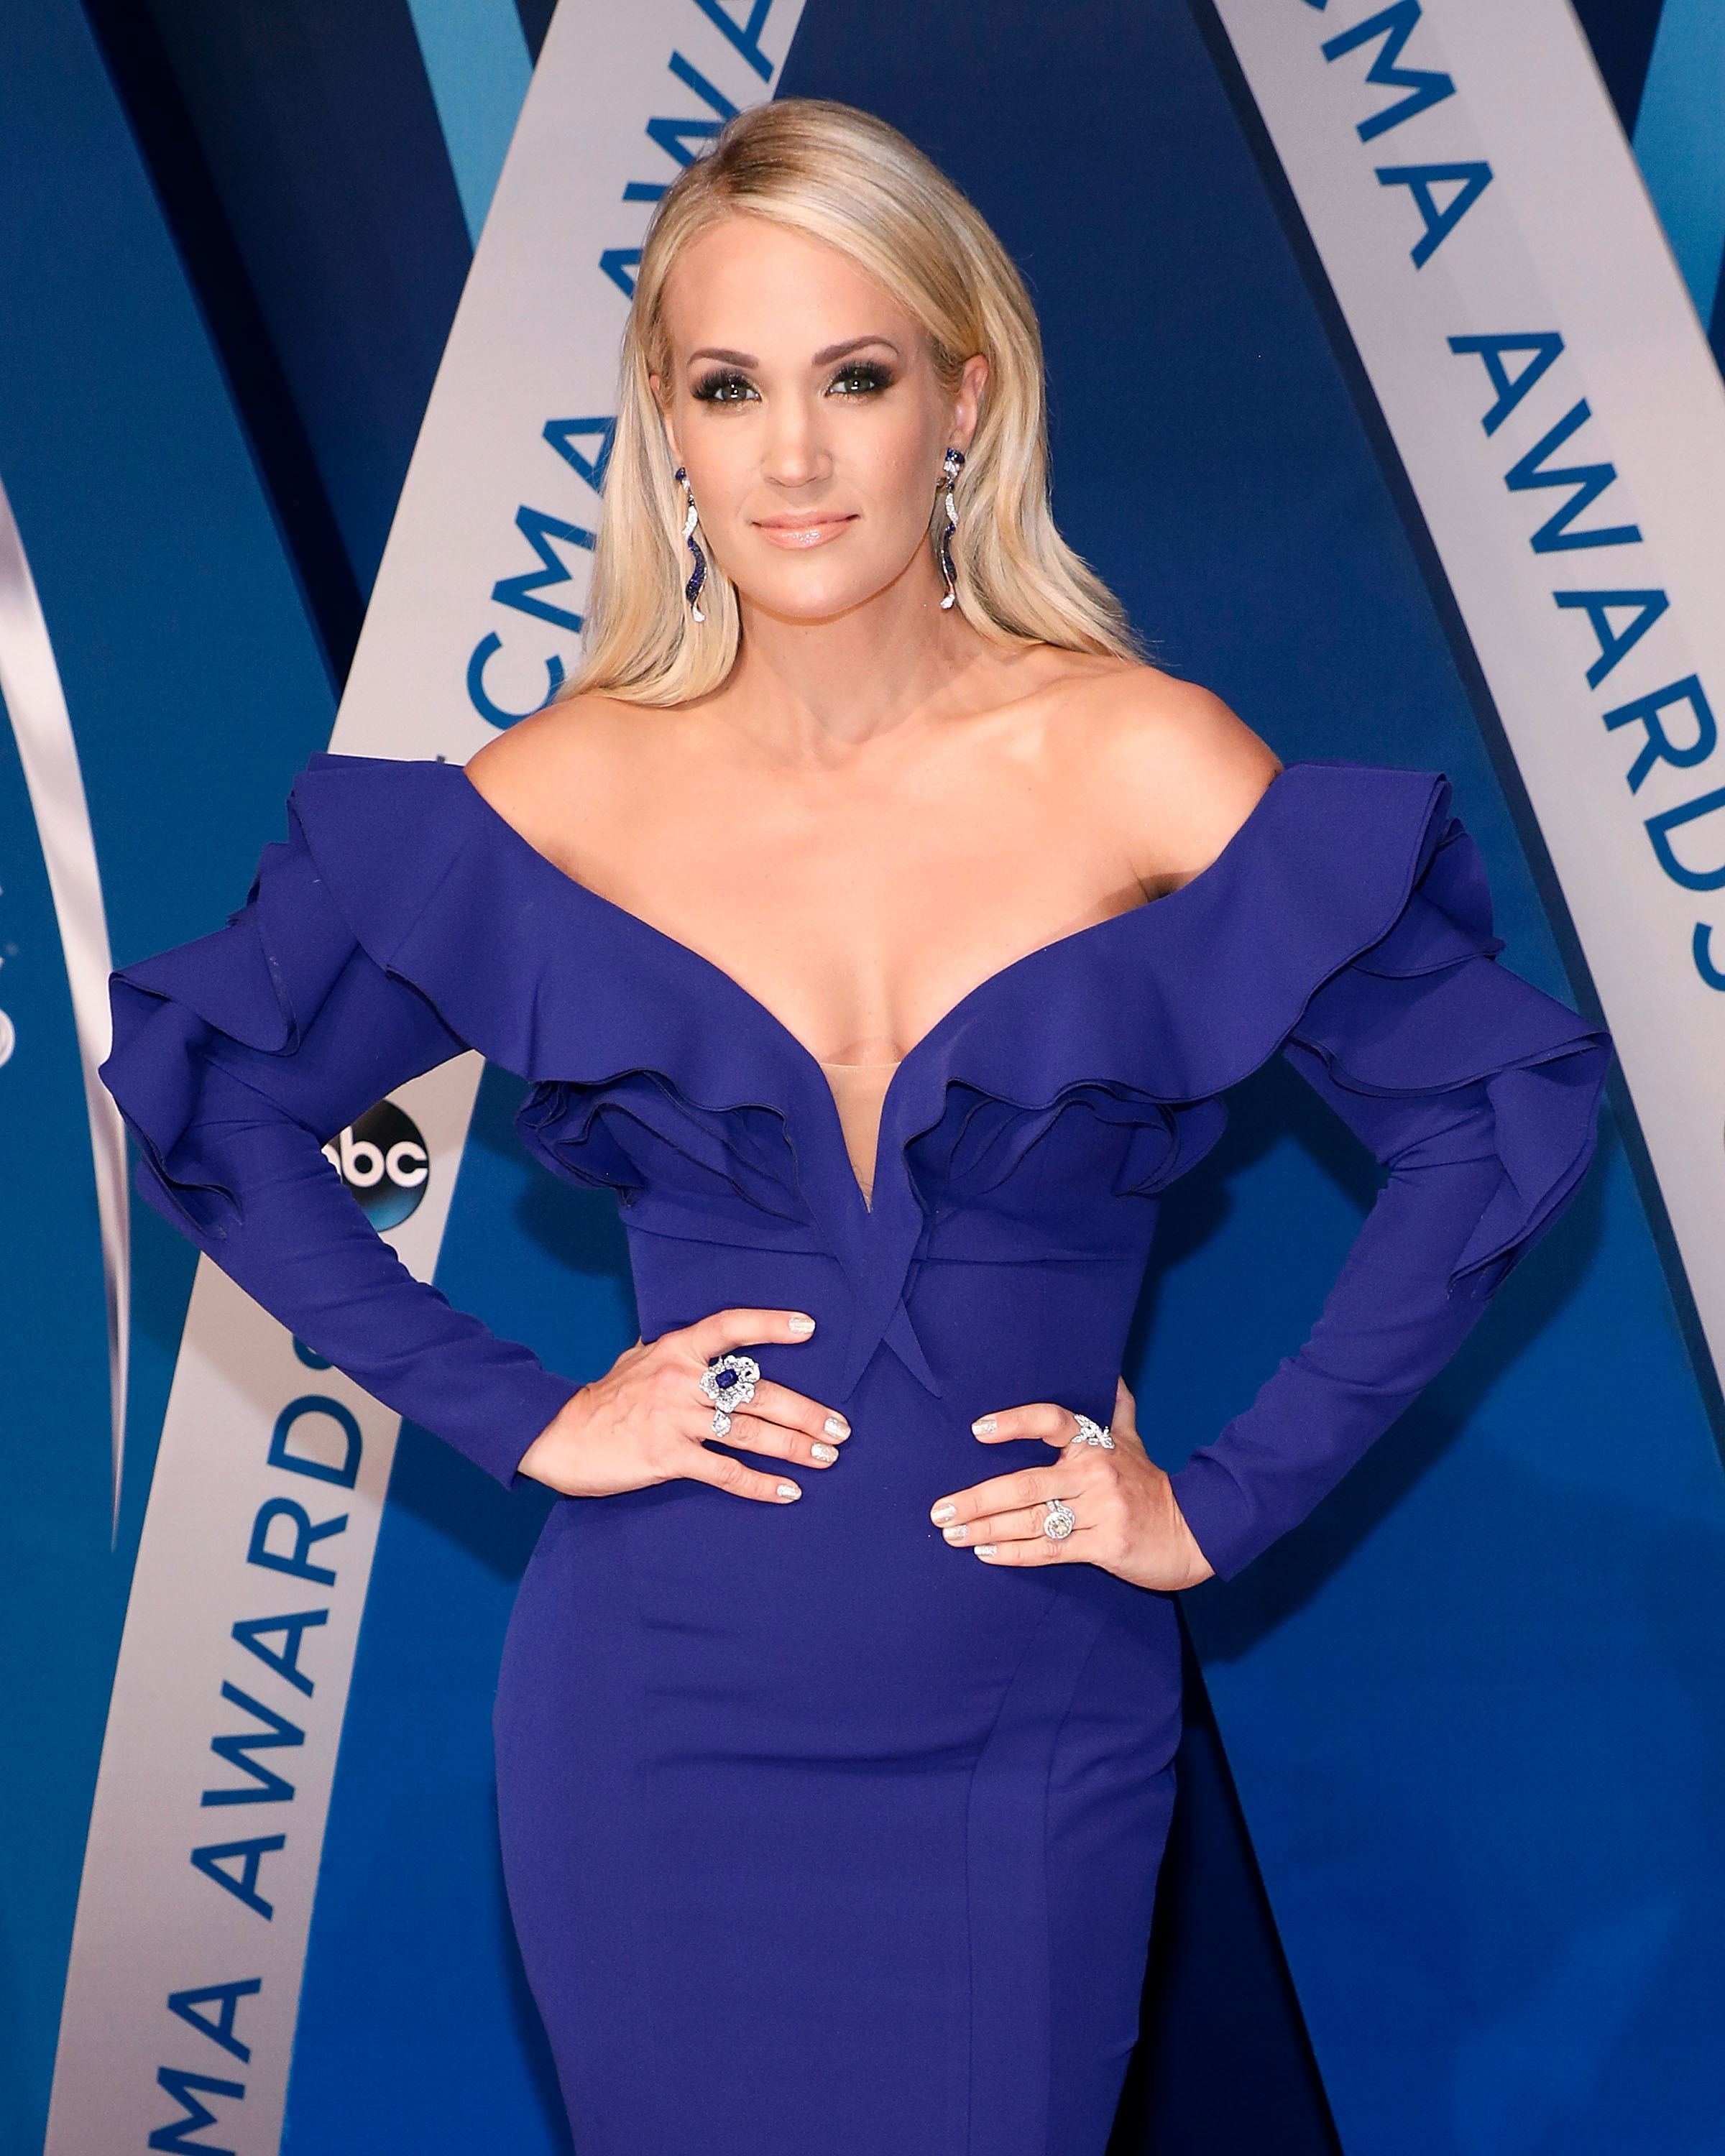 Carrie Underwood attends the 51st annual CMA Awards at the Bridgestone Arena in Nashville, Tennessee, on Nov. 8, 2017.